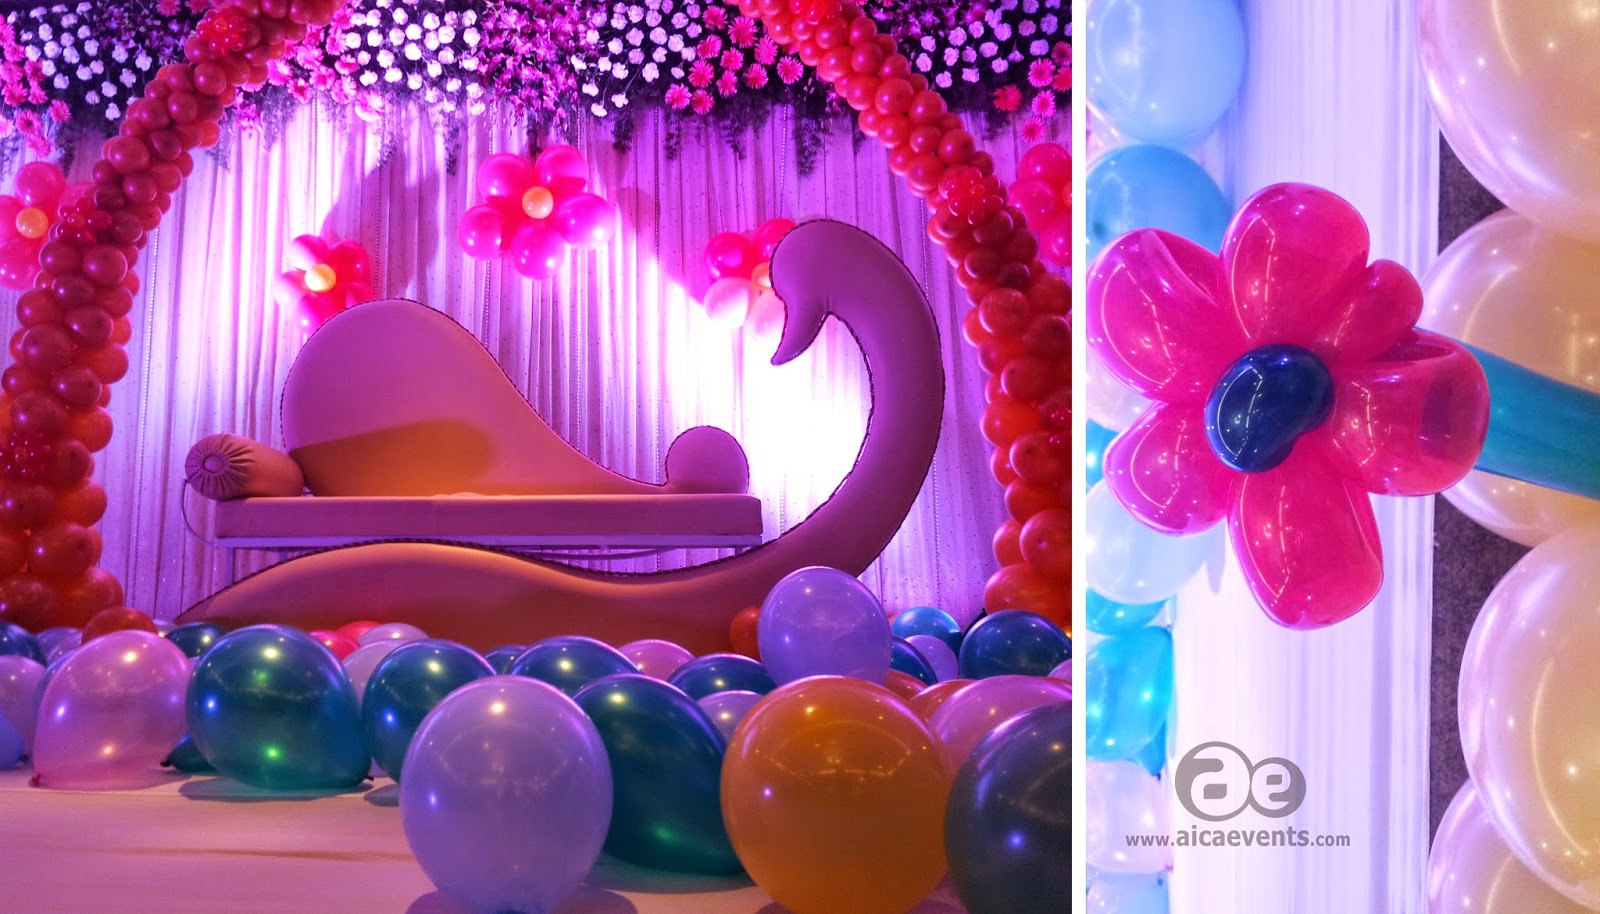 Aicaevents India Balloon Decorations for Birthday parties